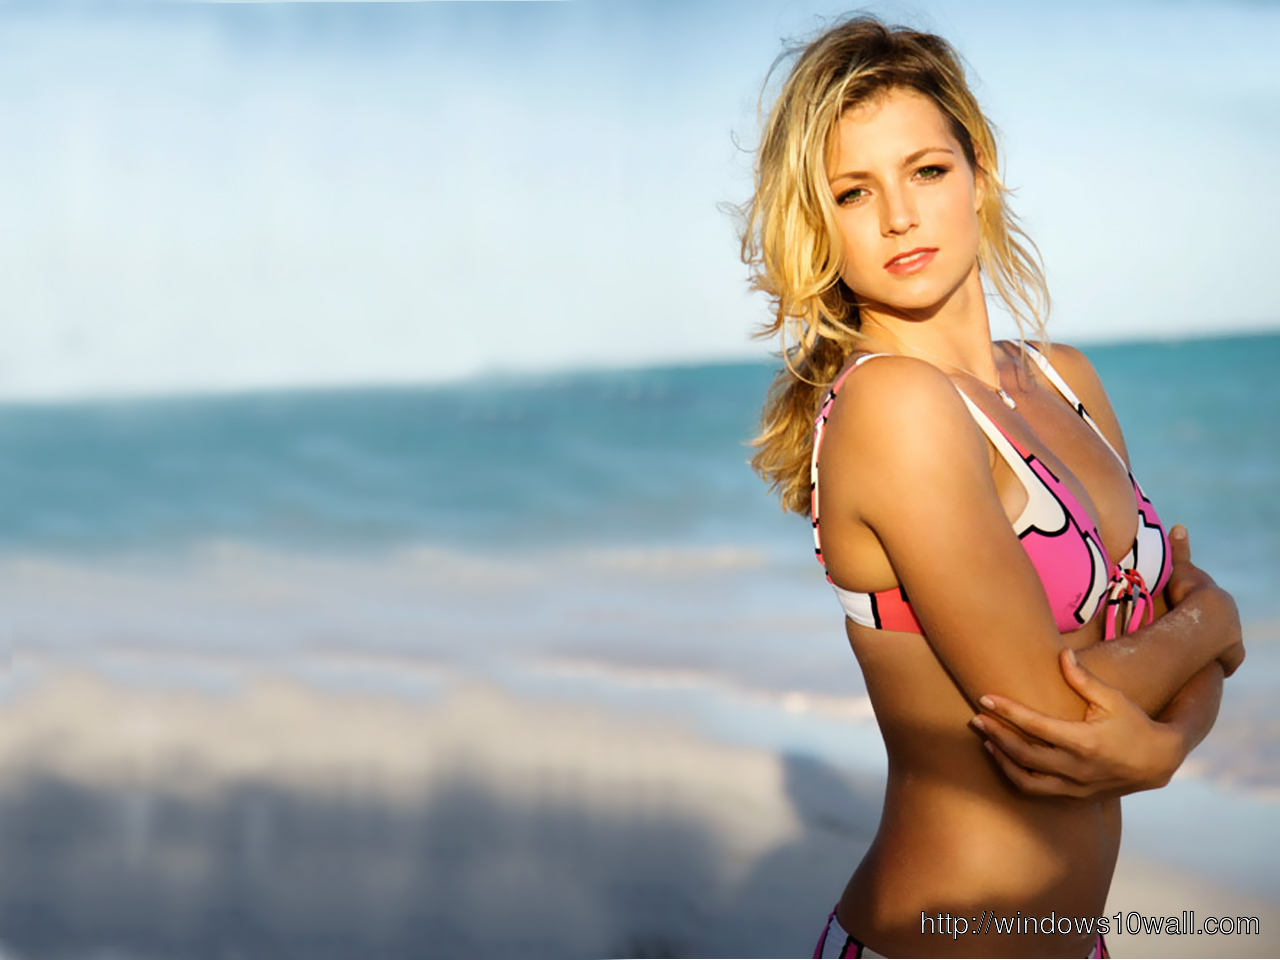 Maria Kirilenko Hot n Sexy Beach Side Wallpaper